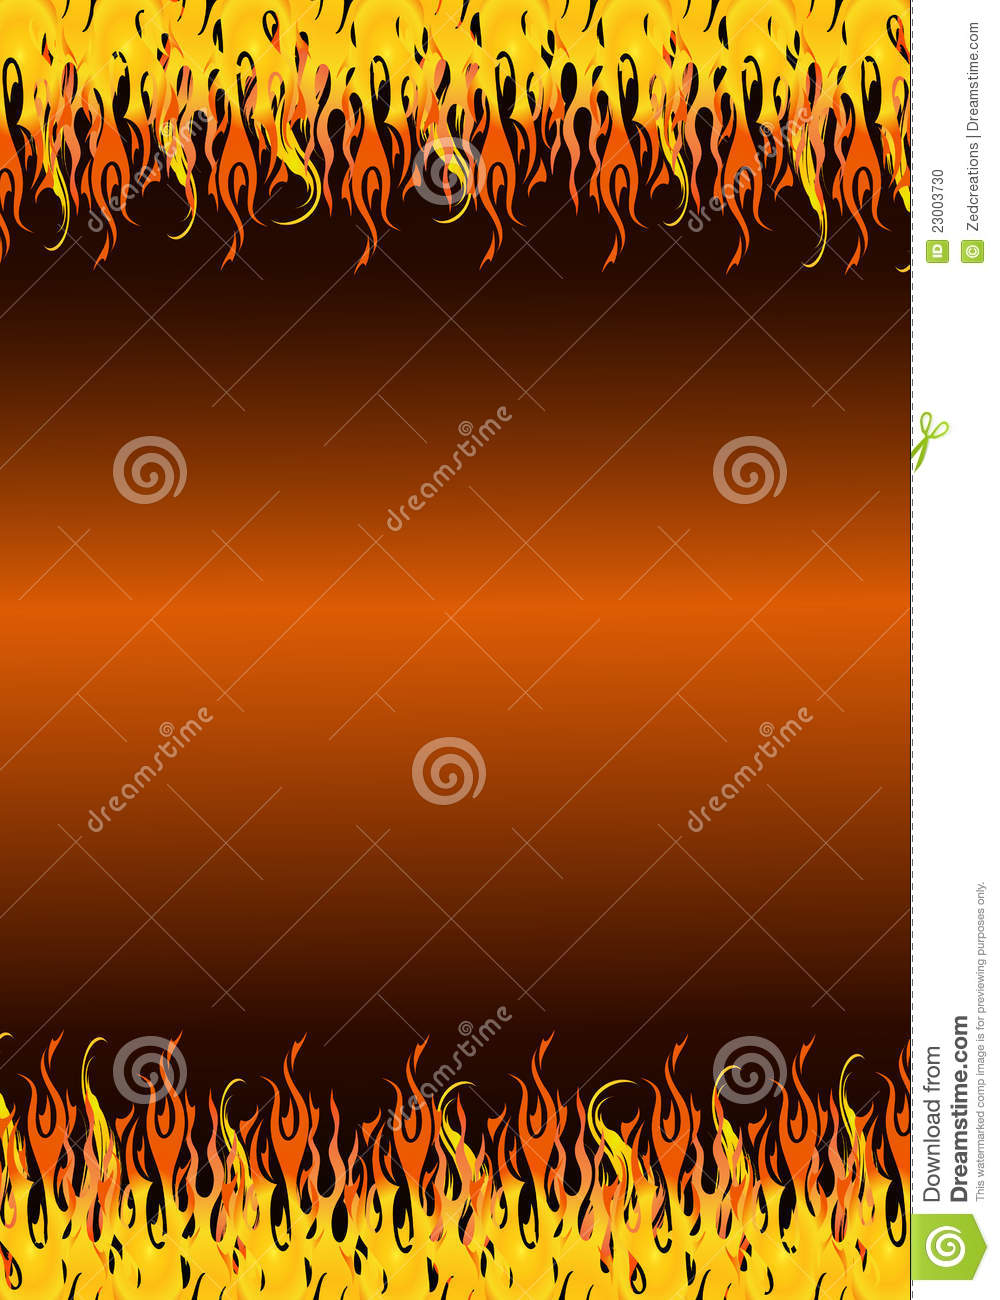 Flames Hot Border Design Jpg Pictures